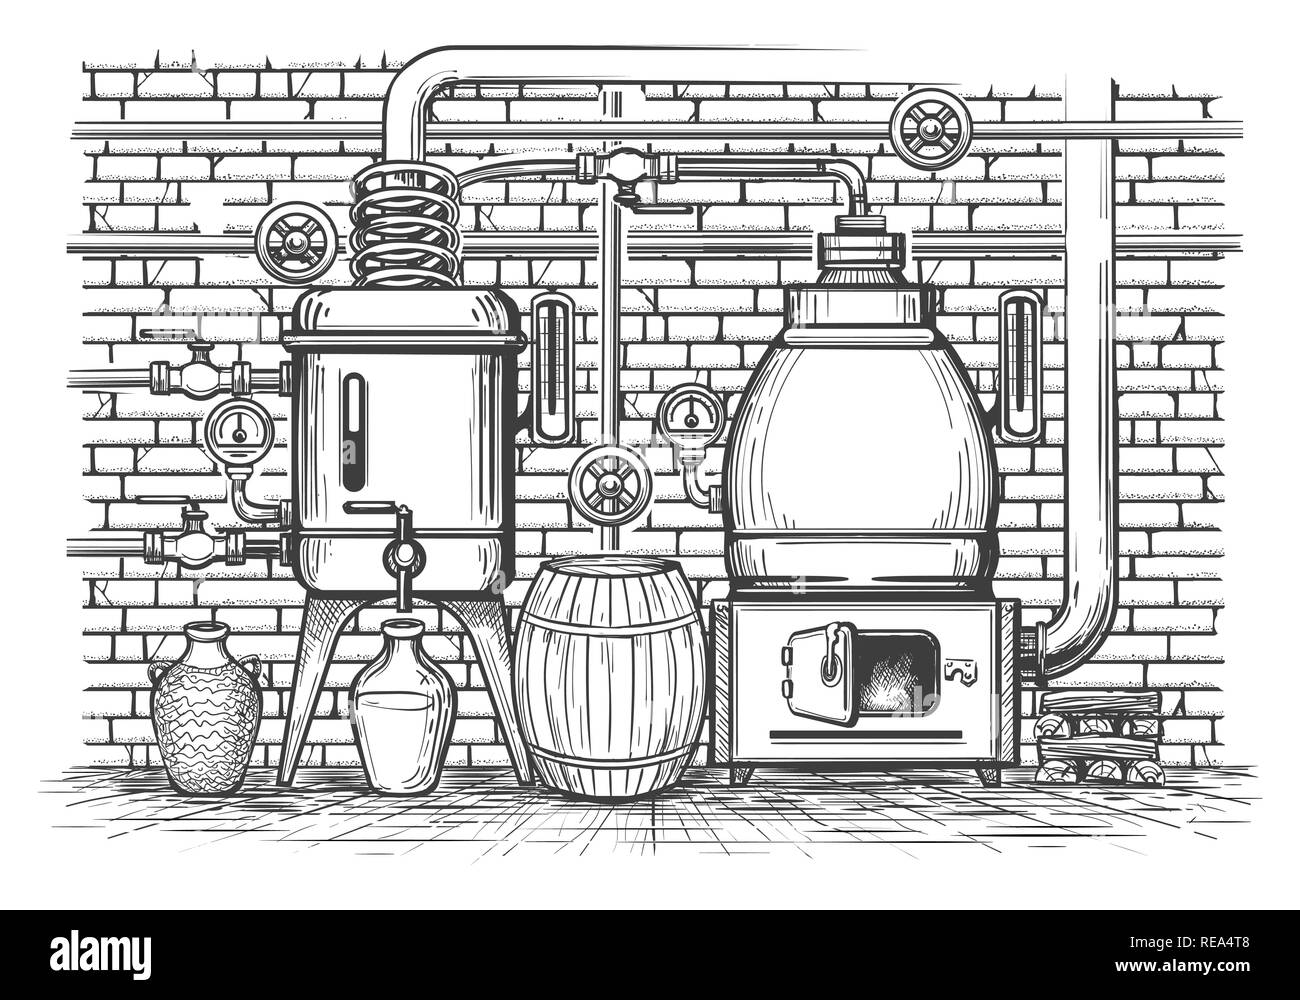 Vintage distillation equipment. Old sketch distil apparatus distilled whisky copper tank vintage metal moonshine, vector illustration - Stock Image